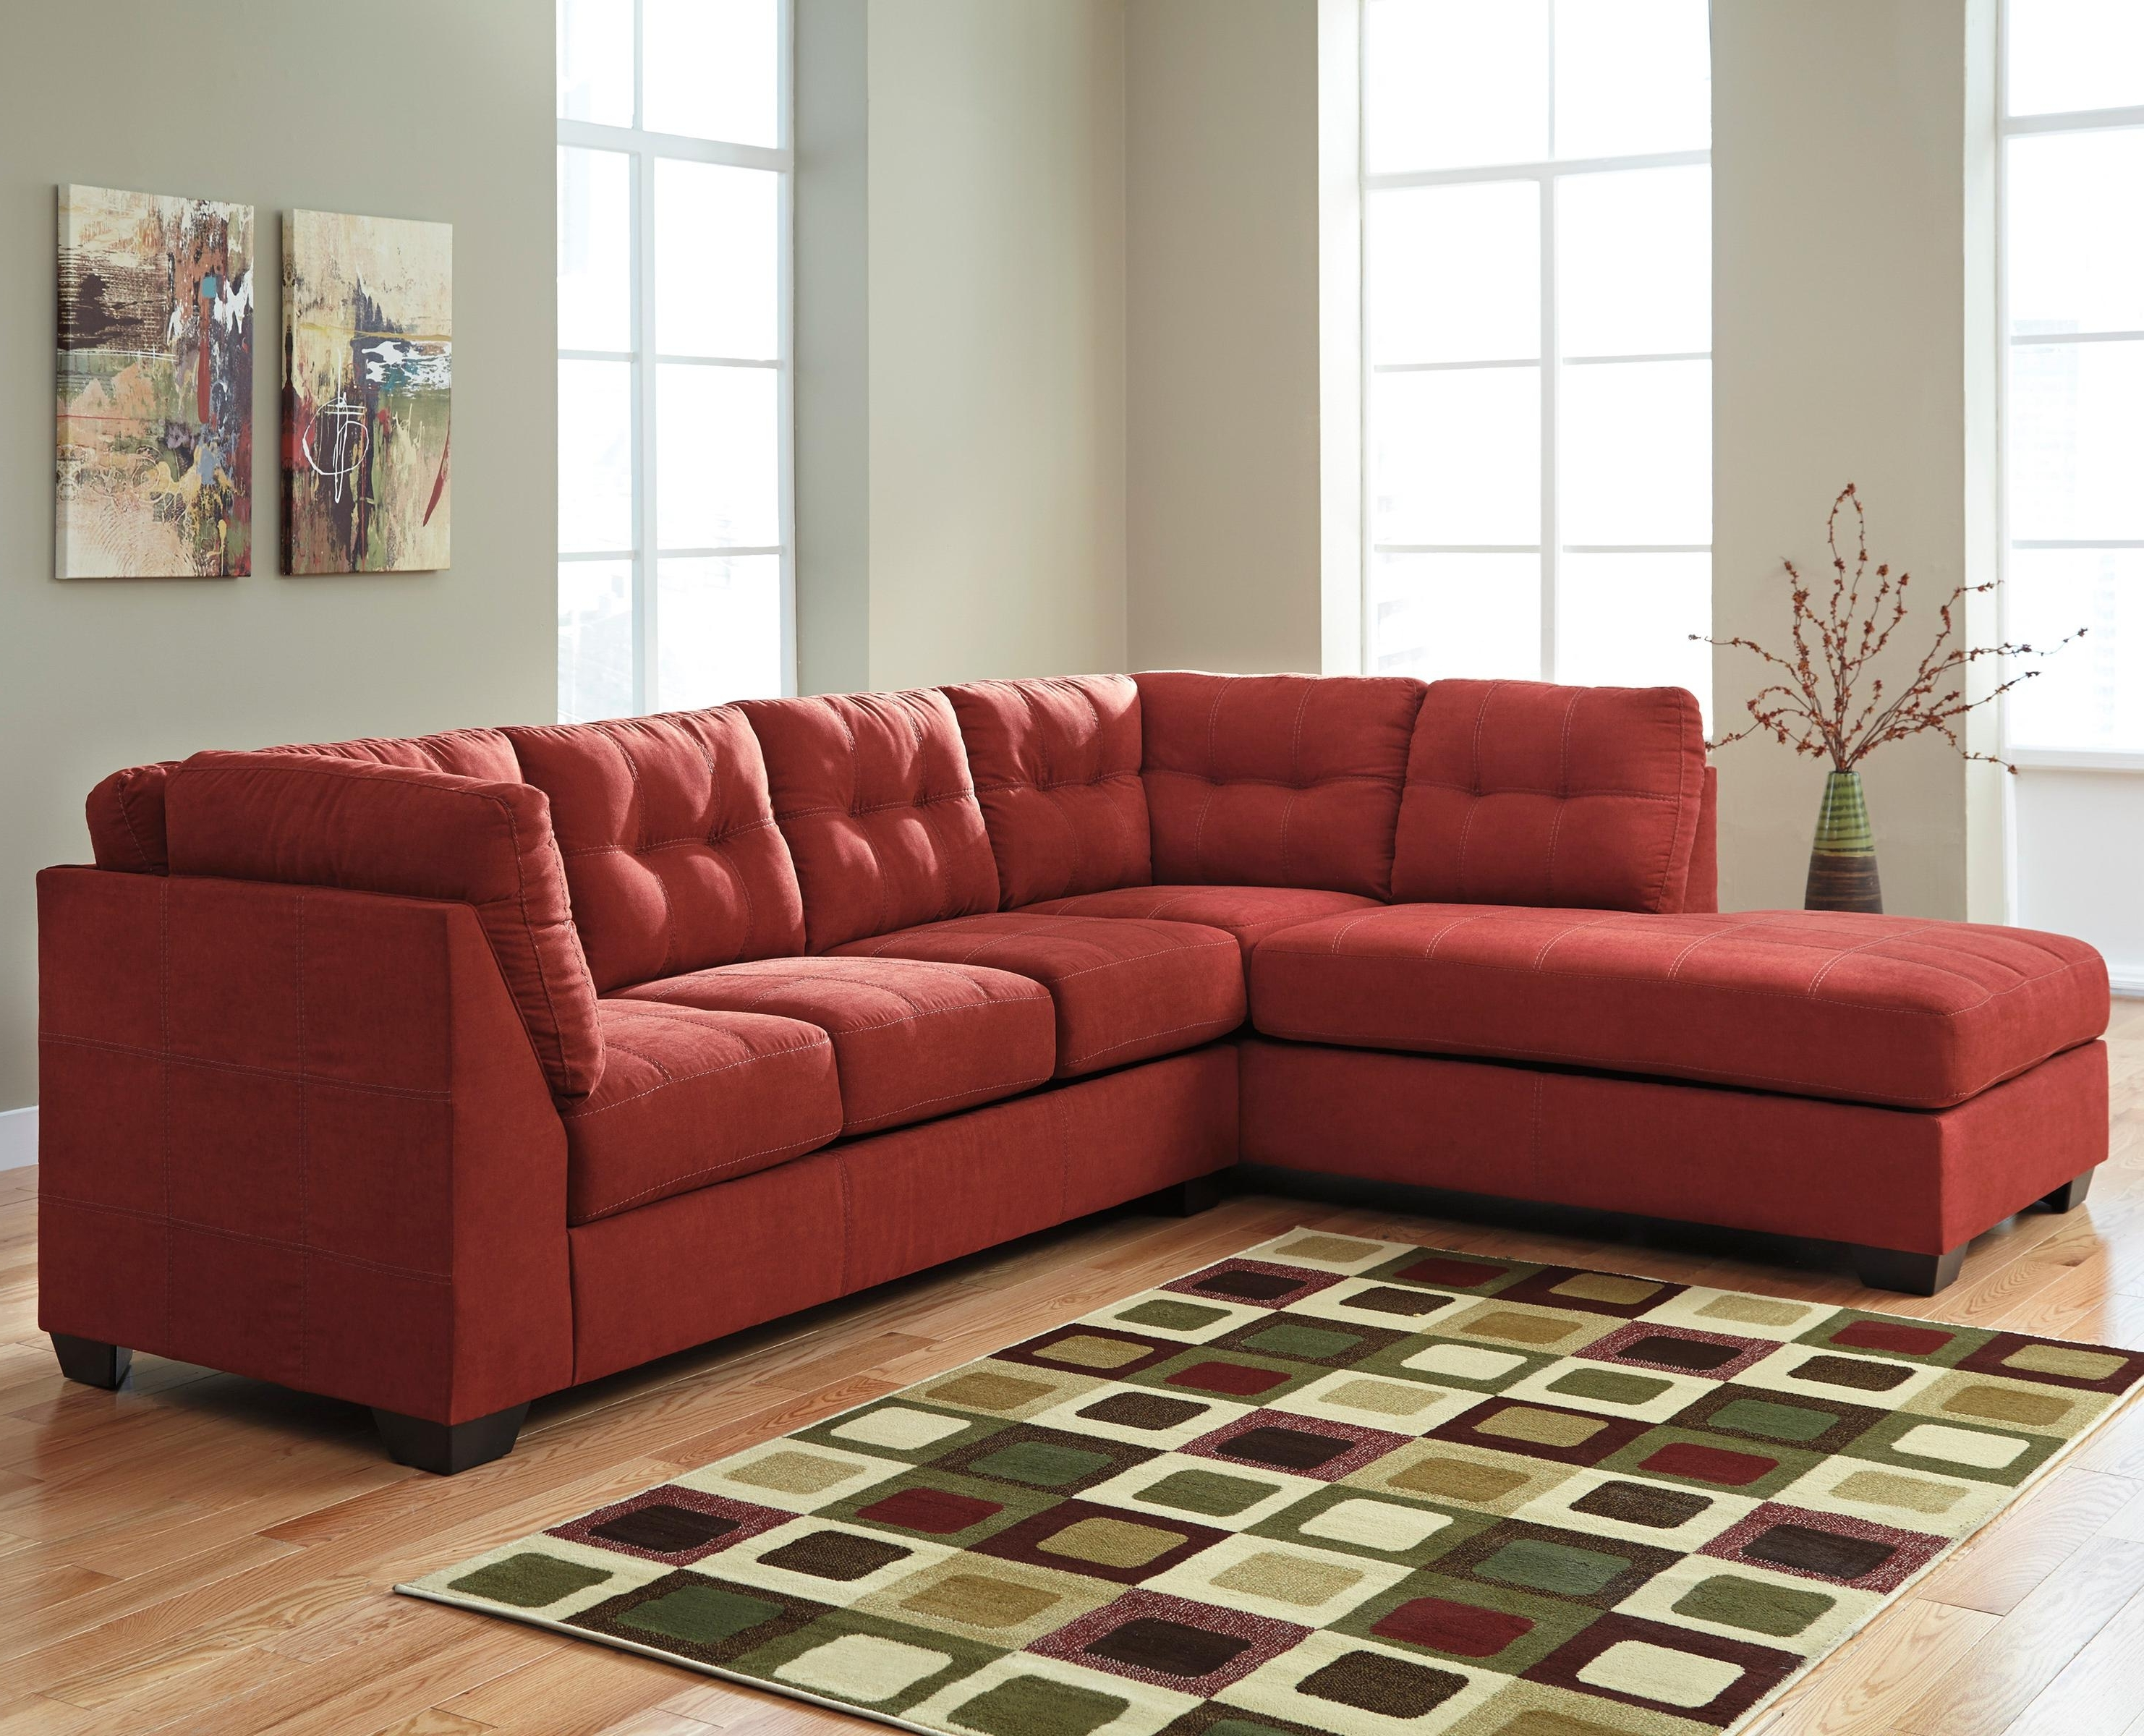 Red Sleeper Sofas In Most Up To Date 2 Piece Sectional W/ Sleeper Sofa & Left Chaisebenchcraft (View 11 of 20)